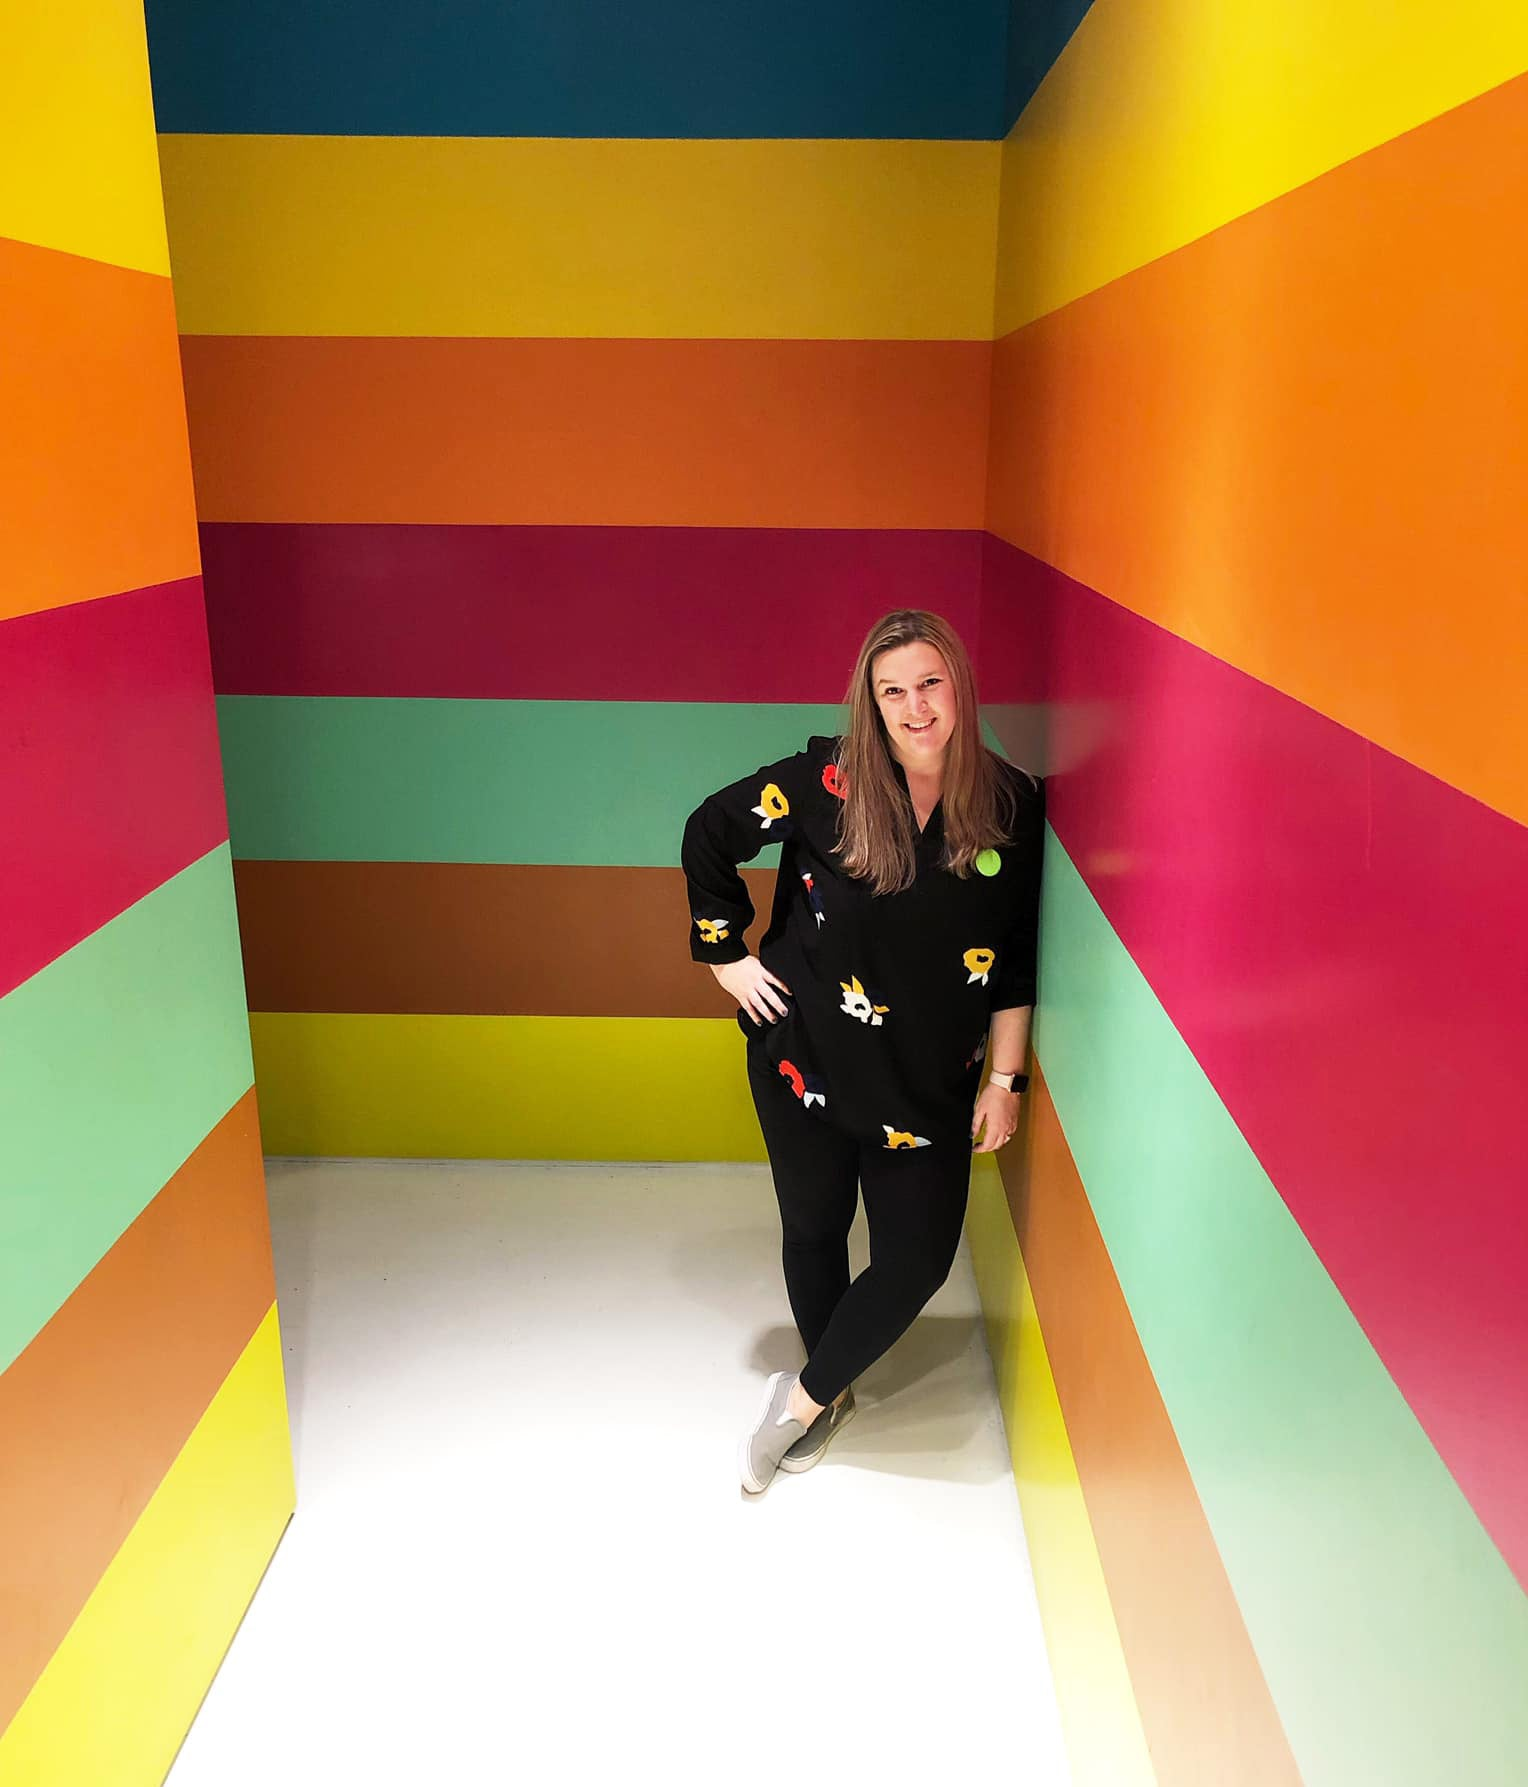 The owner of Knotty Cards, Casey Sweeney, posing against a colorful striped wall.